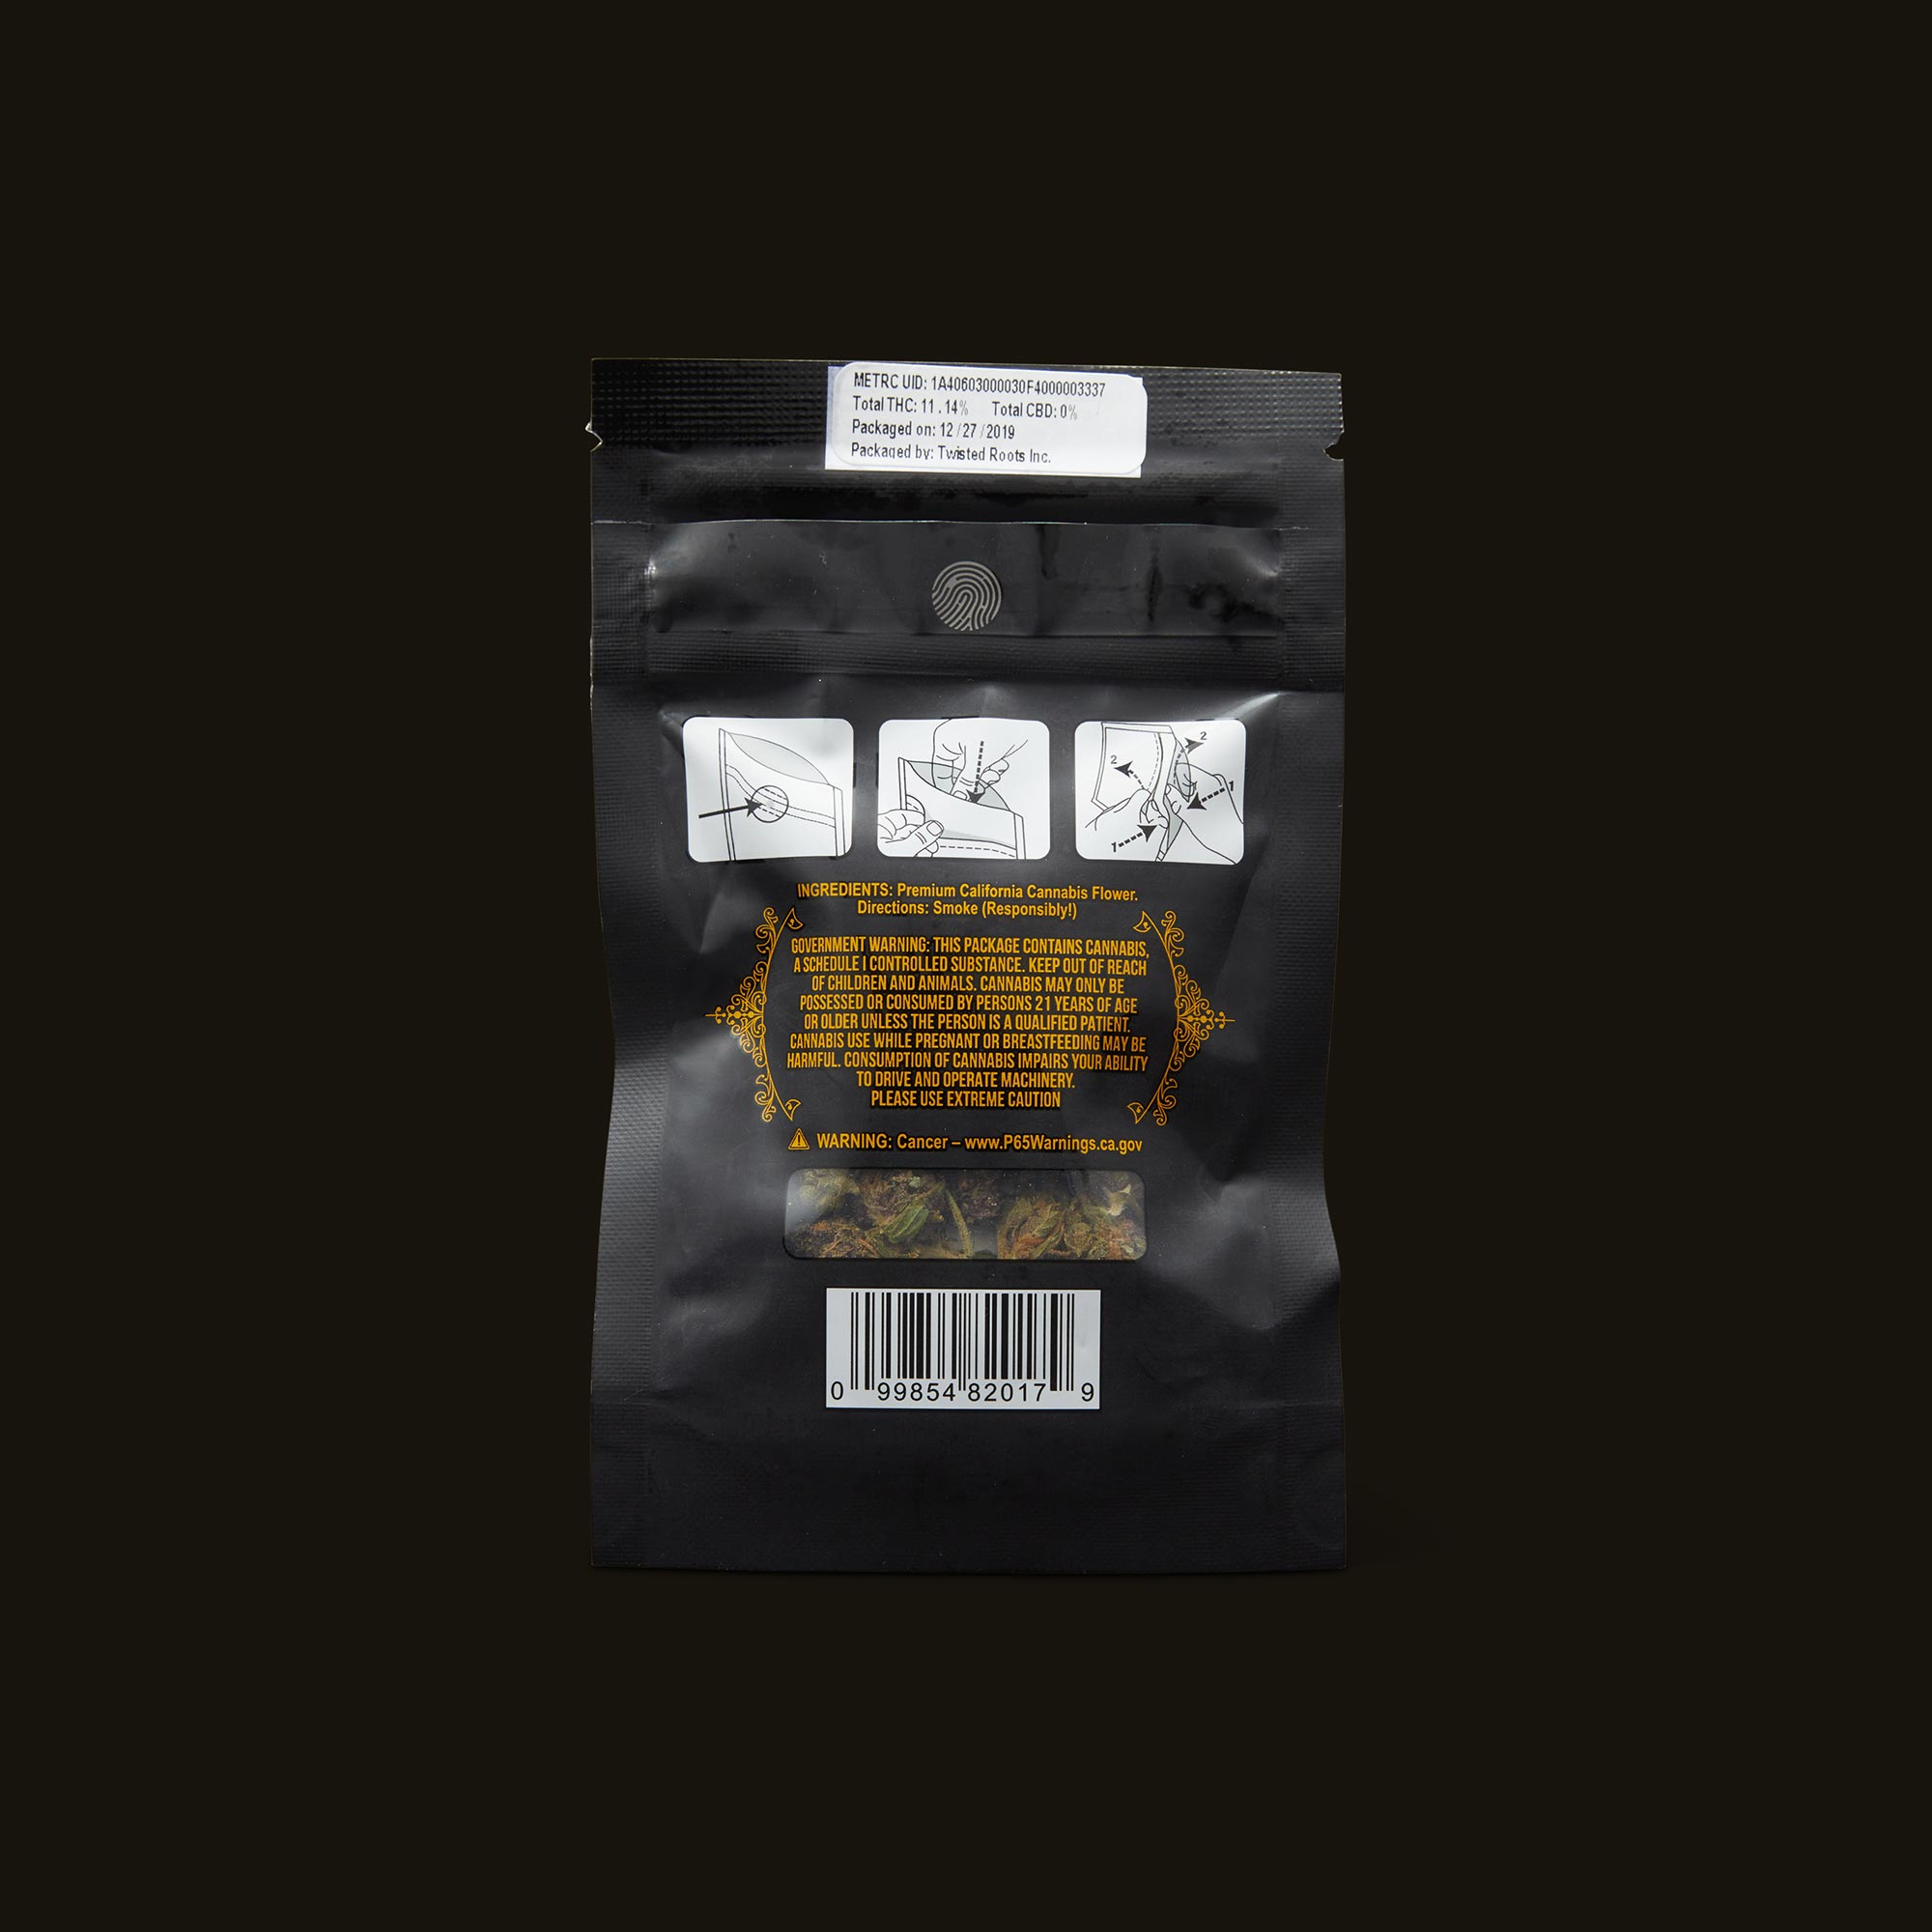 Pacific Stone Forbidden Fruit Indica Back Packaging